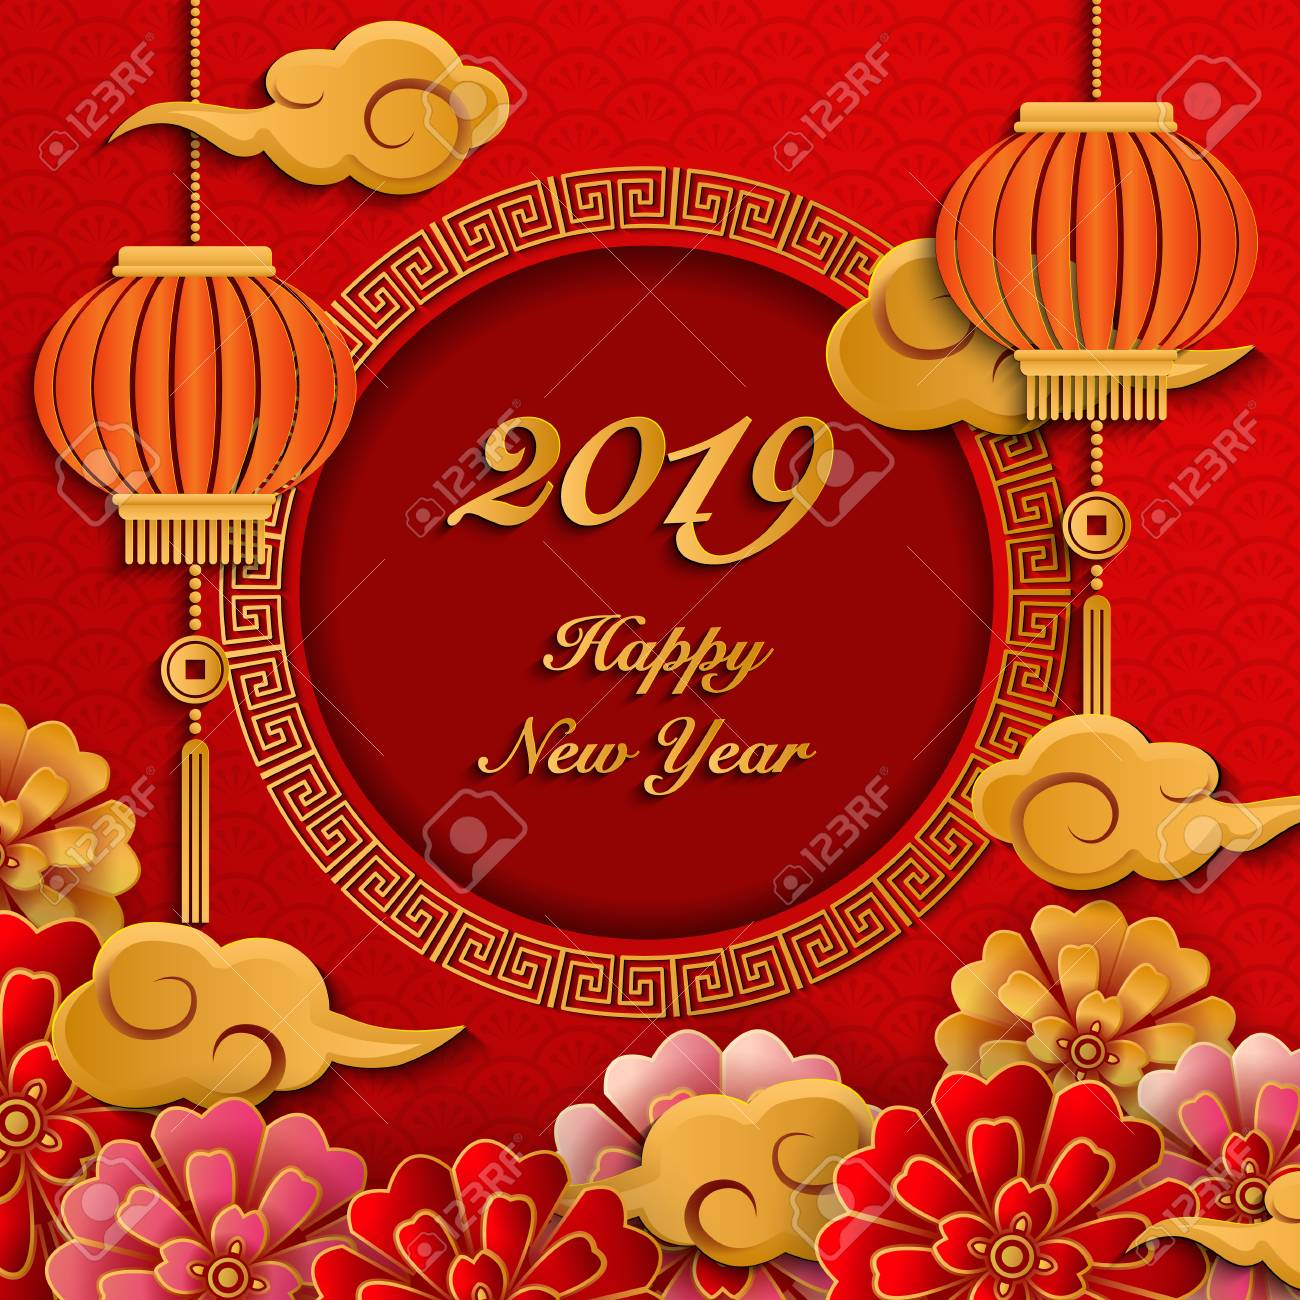 Happy 2019 Chinese New Year Retro Gold Paper Cut Art And Craft